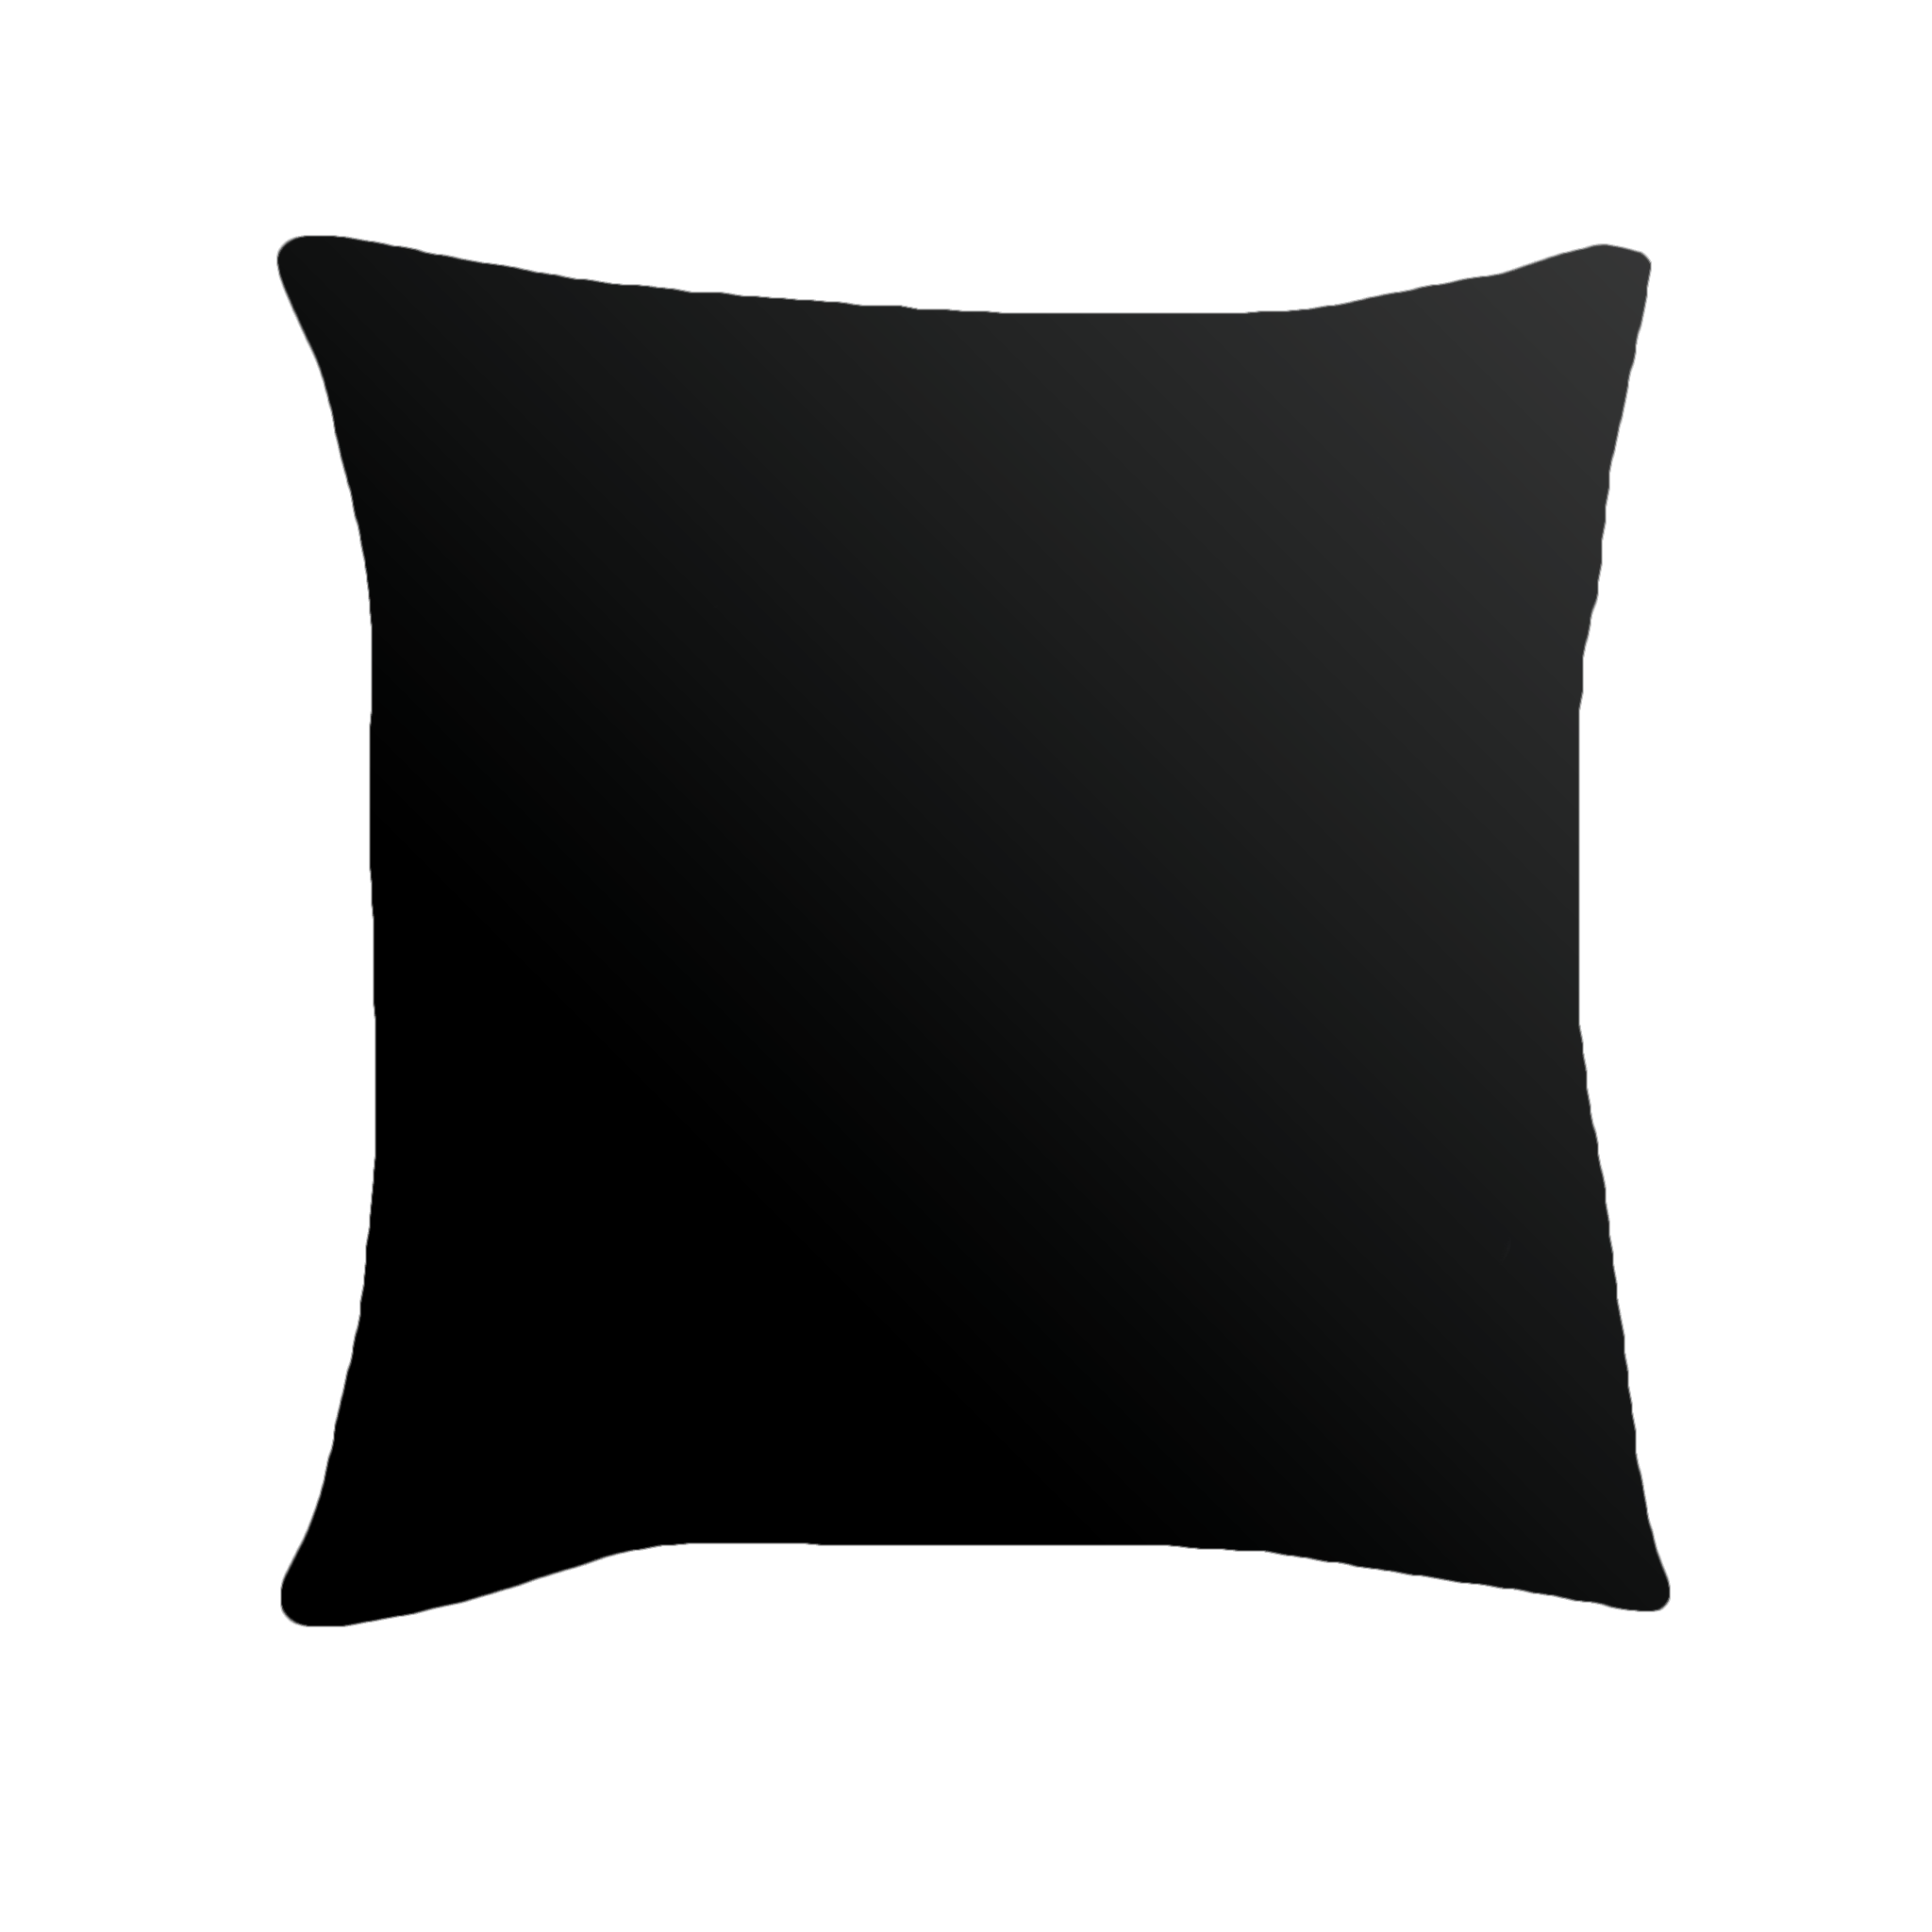 Couch pillow png. Letter j serif font